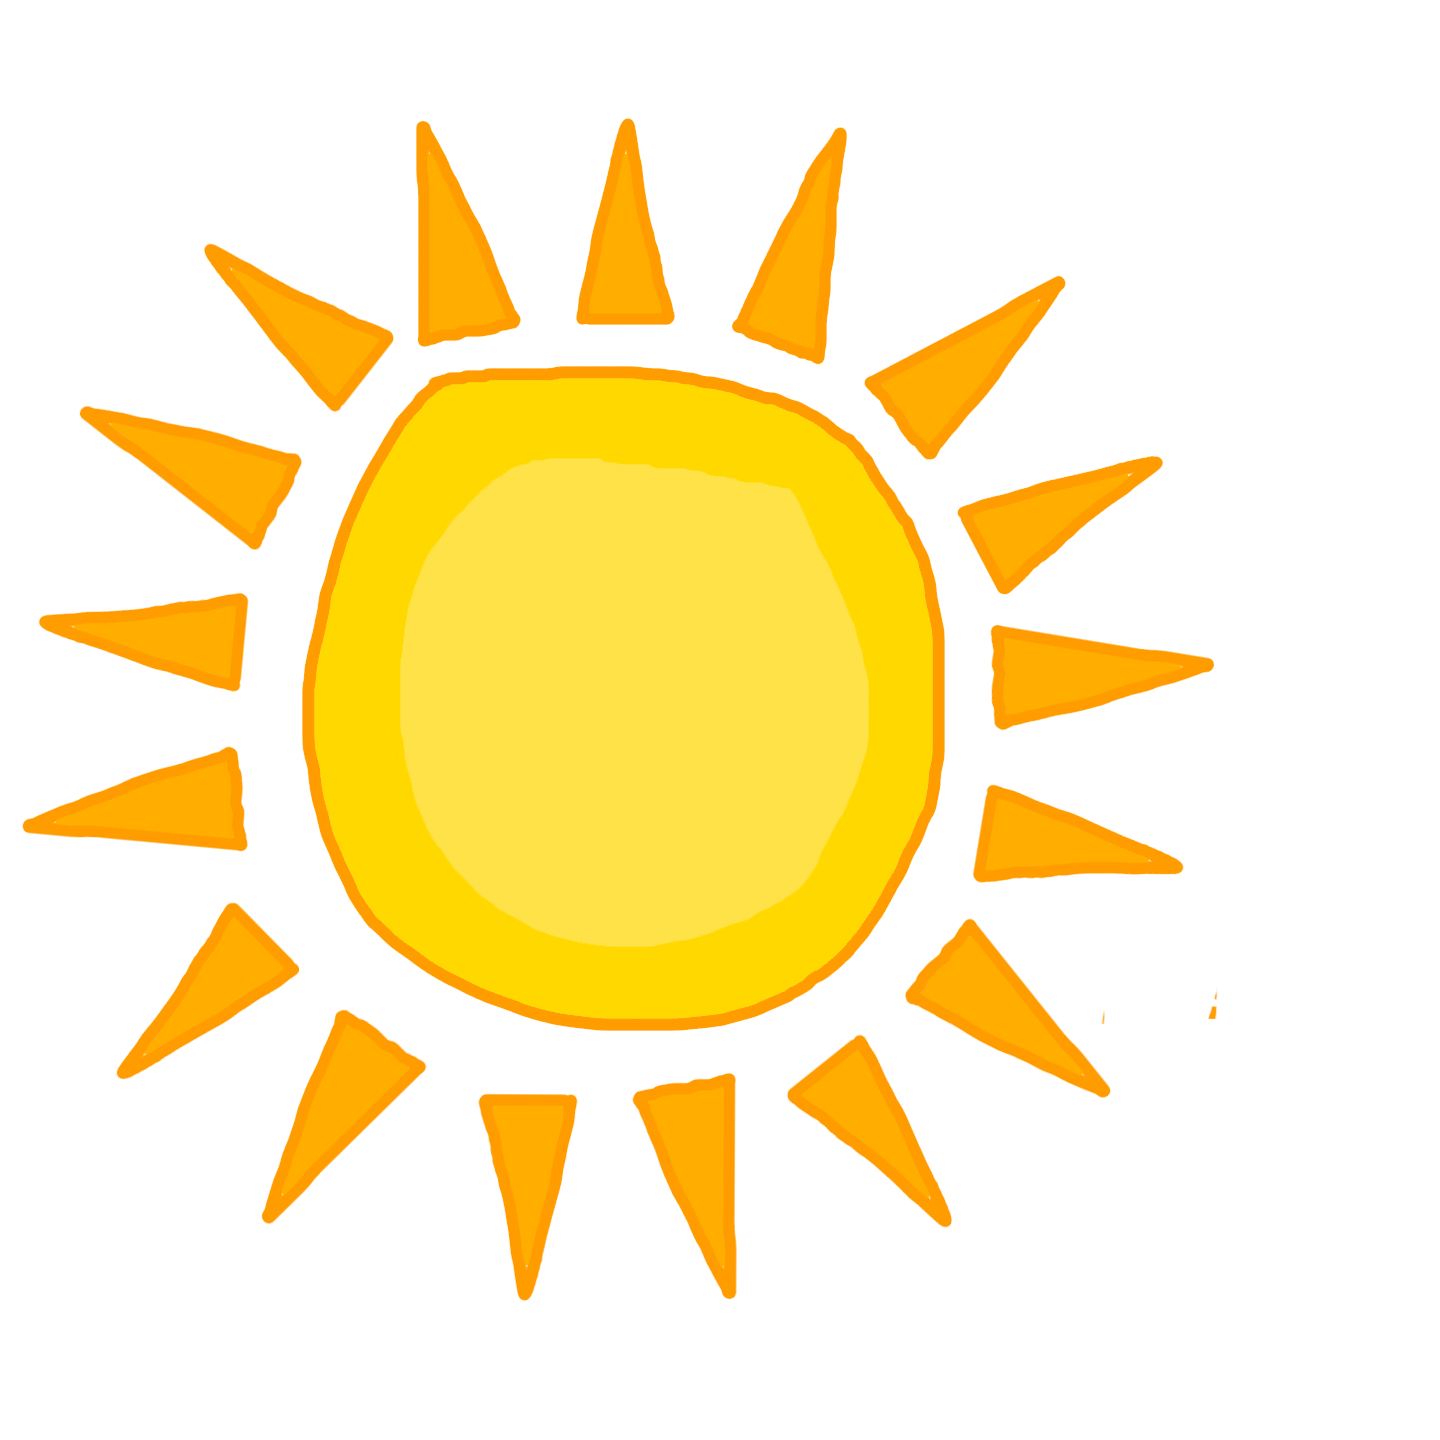 Sun PNG Transparent Background - 137188